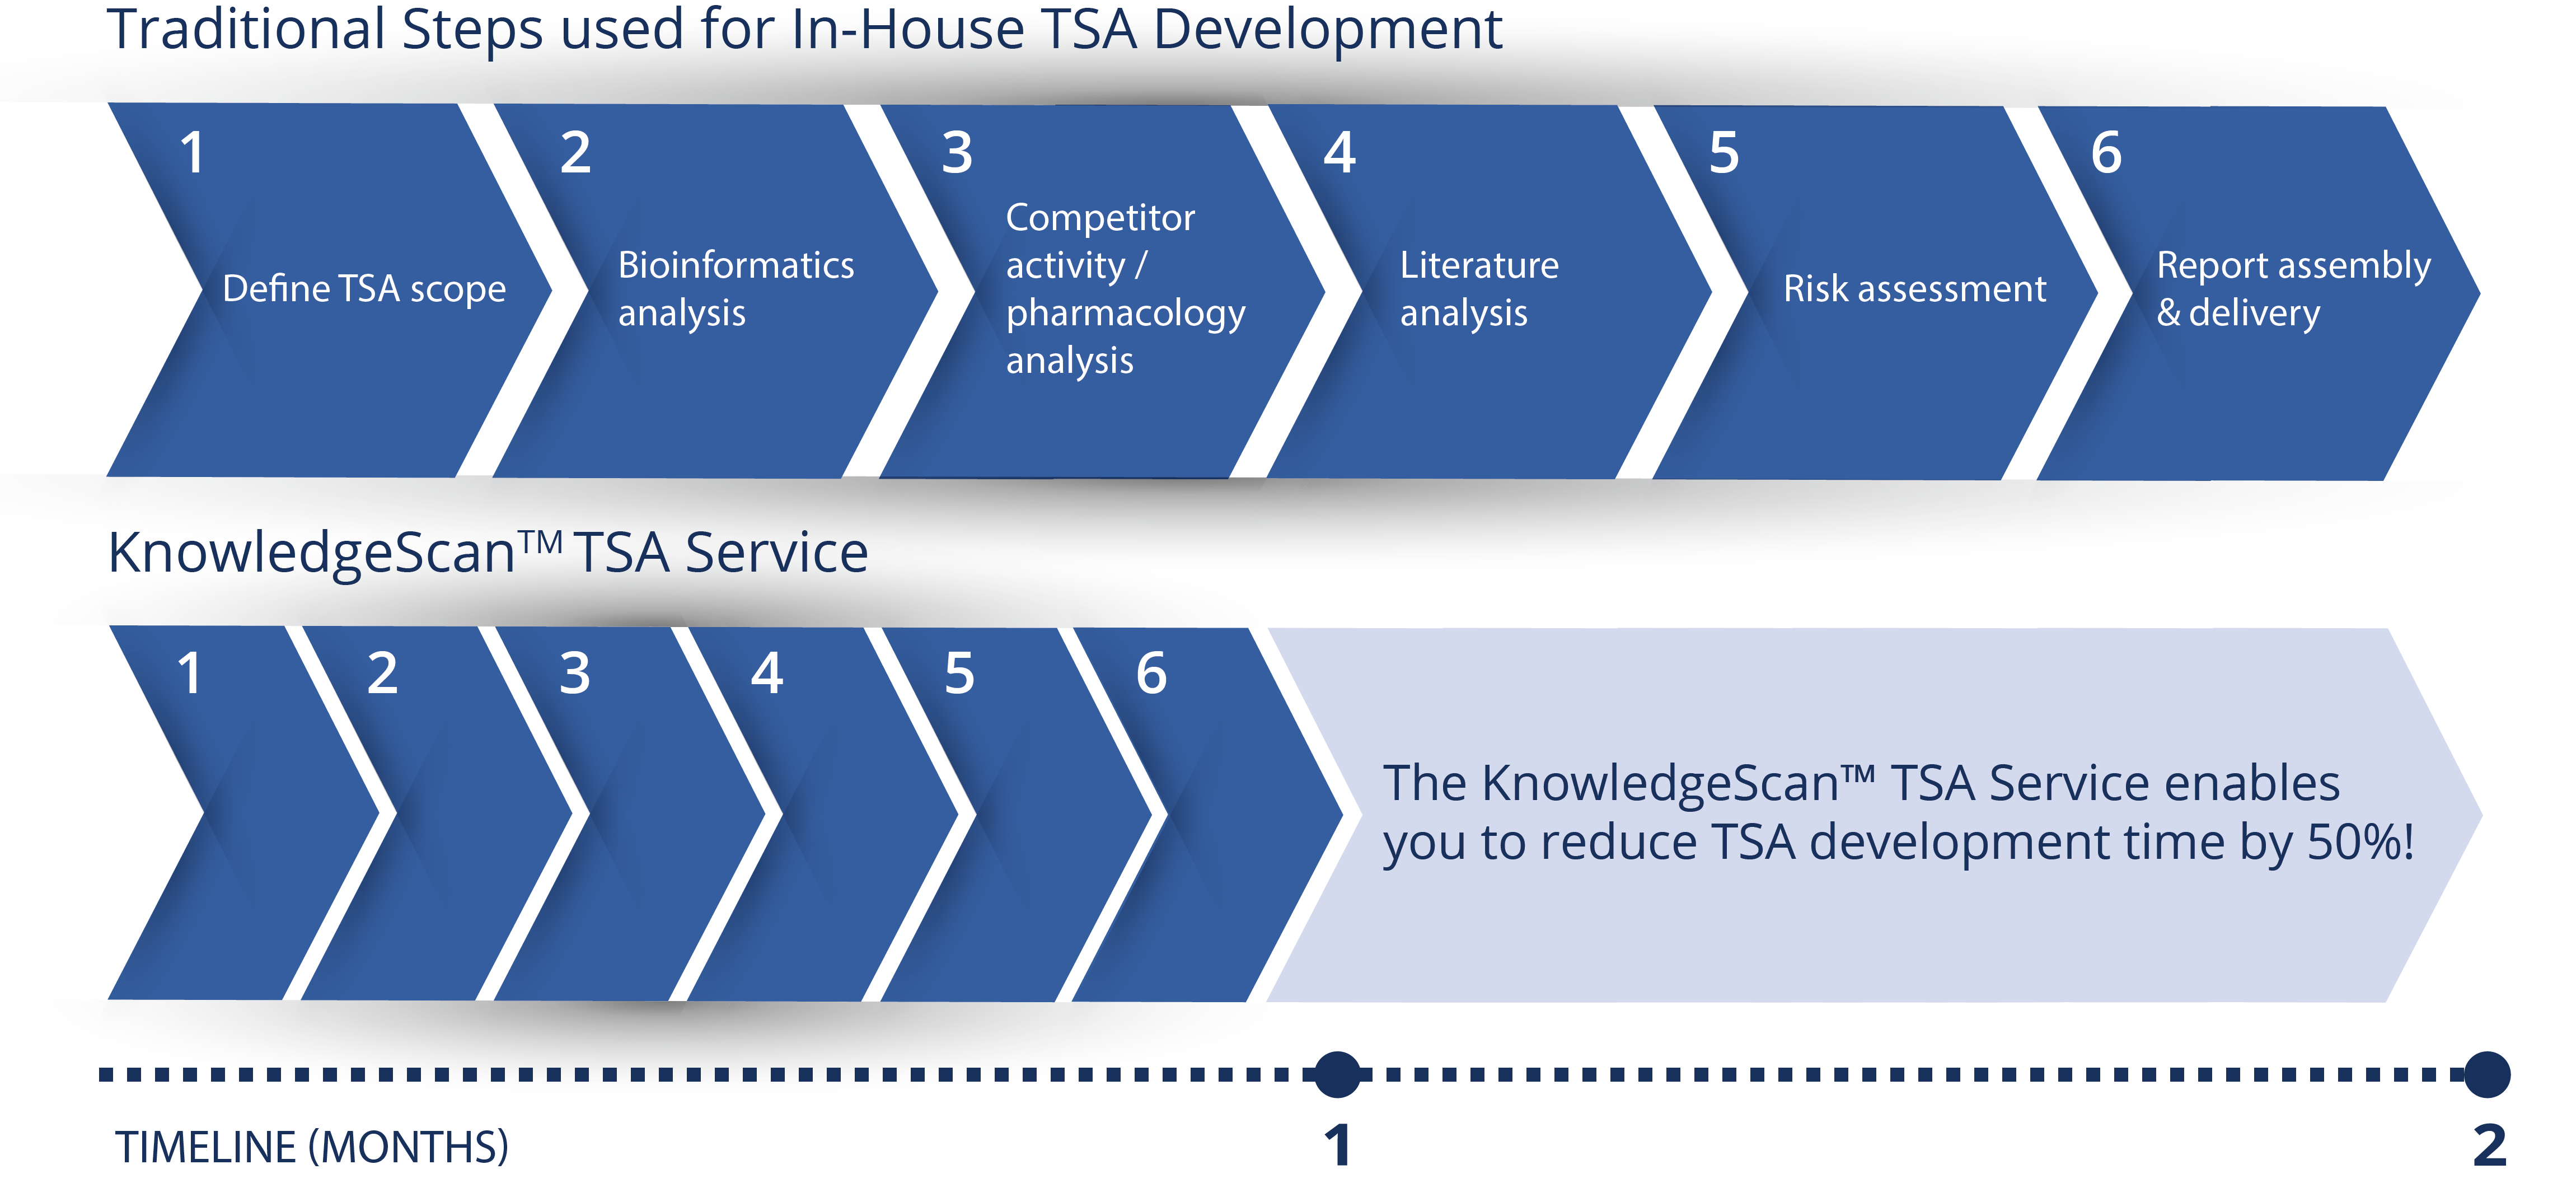 Diagram showing how KnowledgeScan can reduce the traditional costs of TSA development by up to 50%